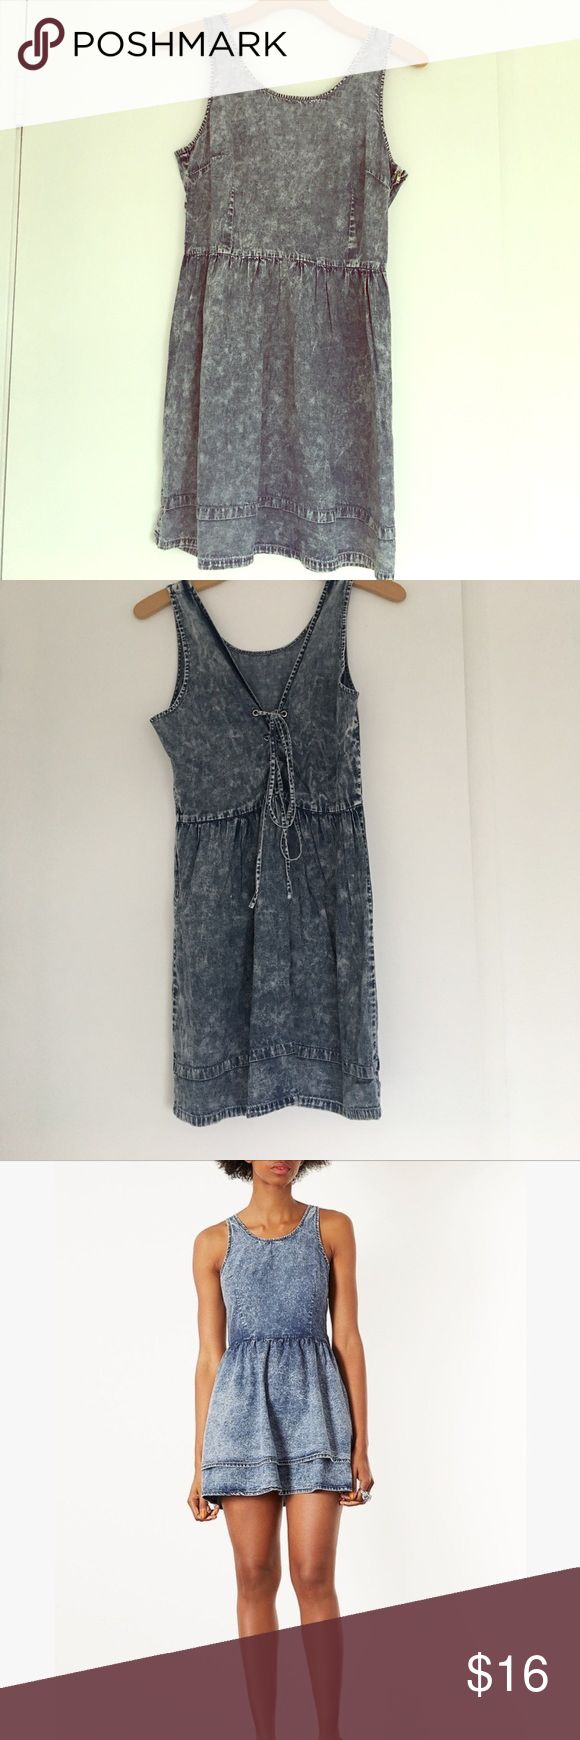 Denim Skater Dress 100% cotton denim dress that looks exactly (is?) the Moto Denim Acid LaceUp Skater Dress from TOPSHOP. (Pics 3 & 4 for comparison). Brand name and size tags are missing but I'm pretty sure it's a size XS to Small. Dresses Mini